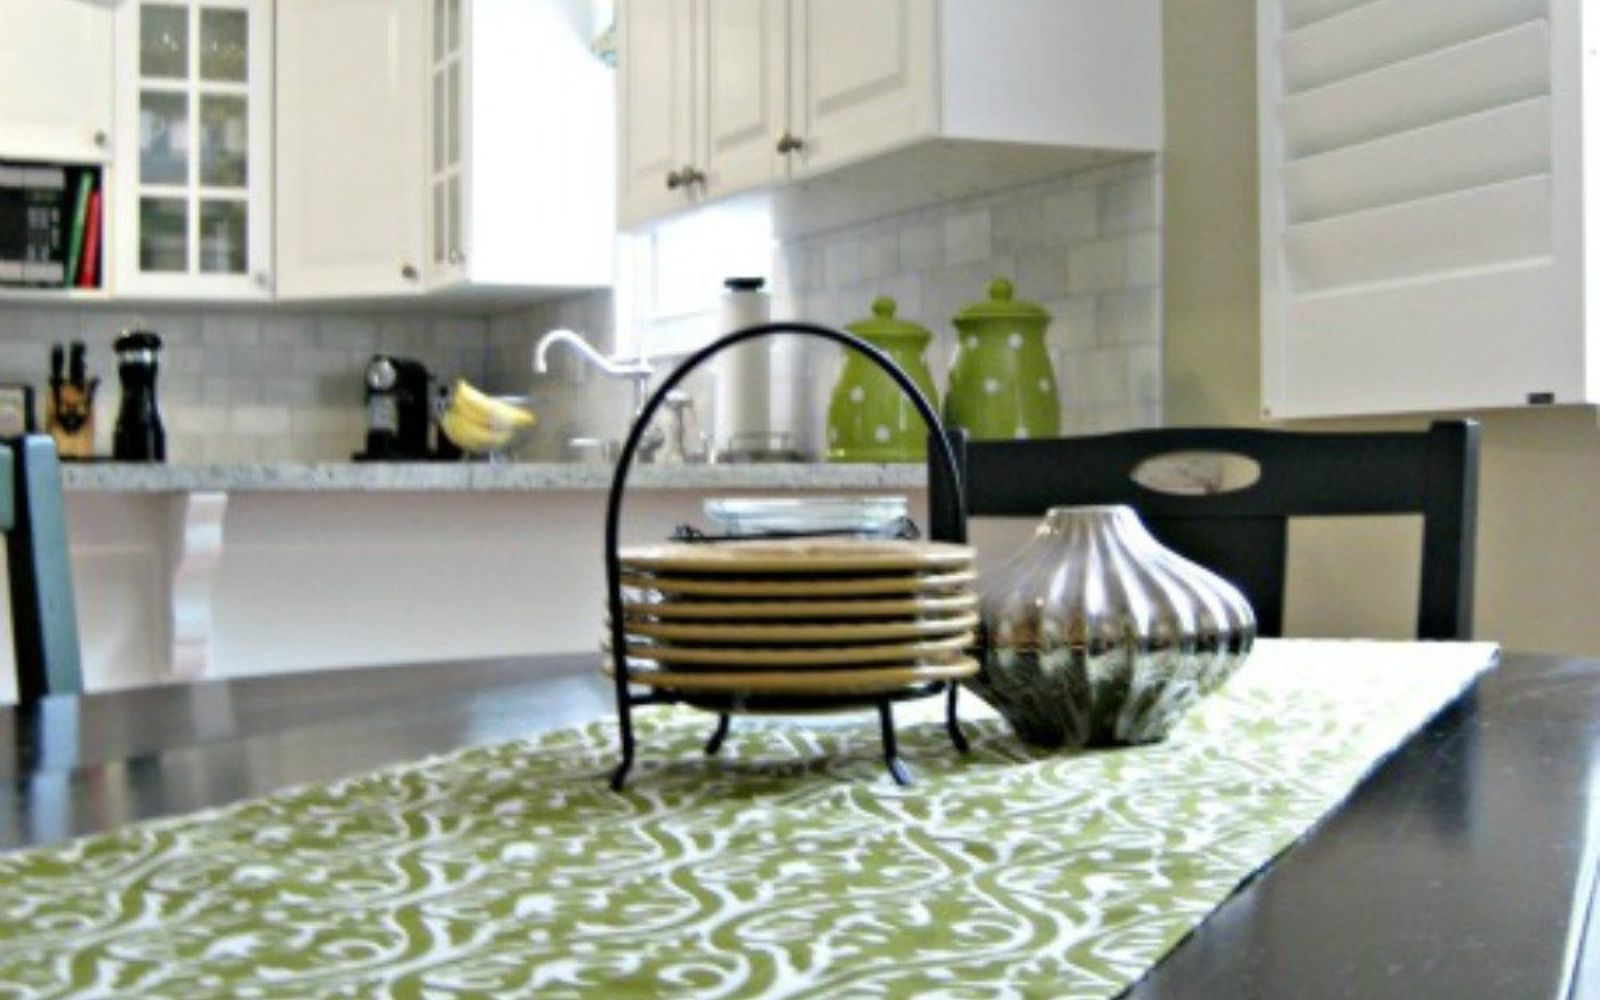 s 11 ways you never thought of using fabric in your kitchen, kitchen design, reupholster, As a no sew breakfast table runner